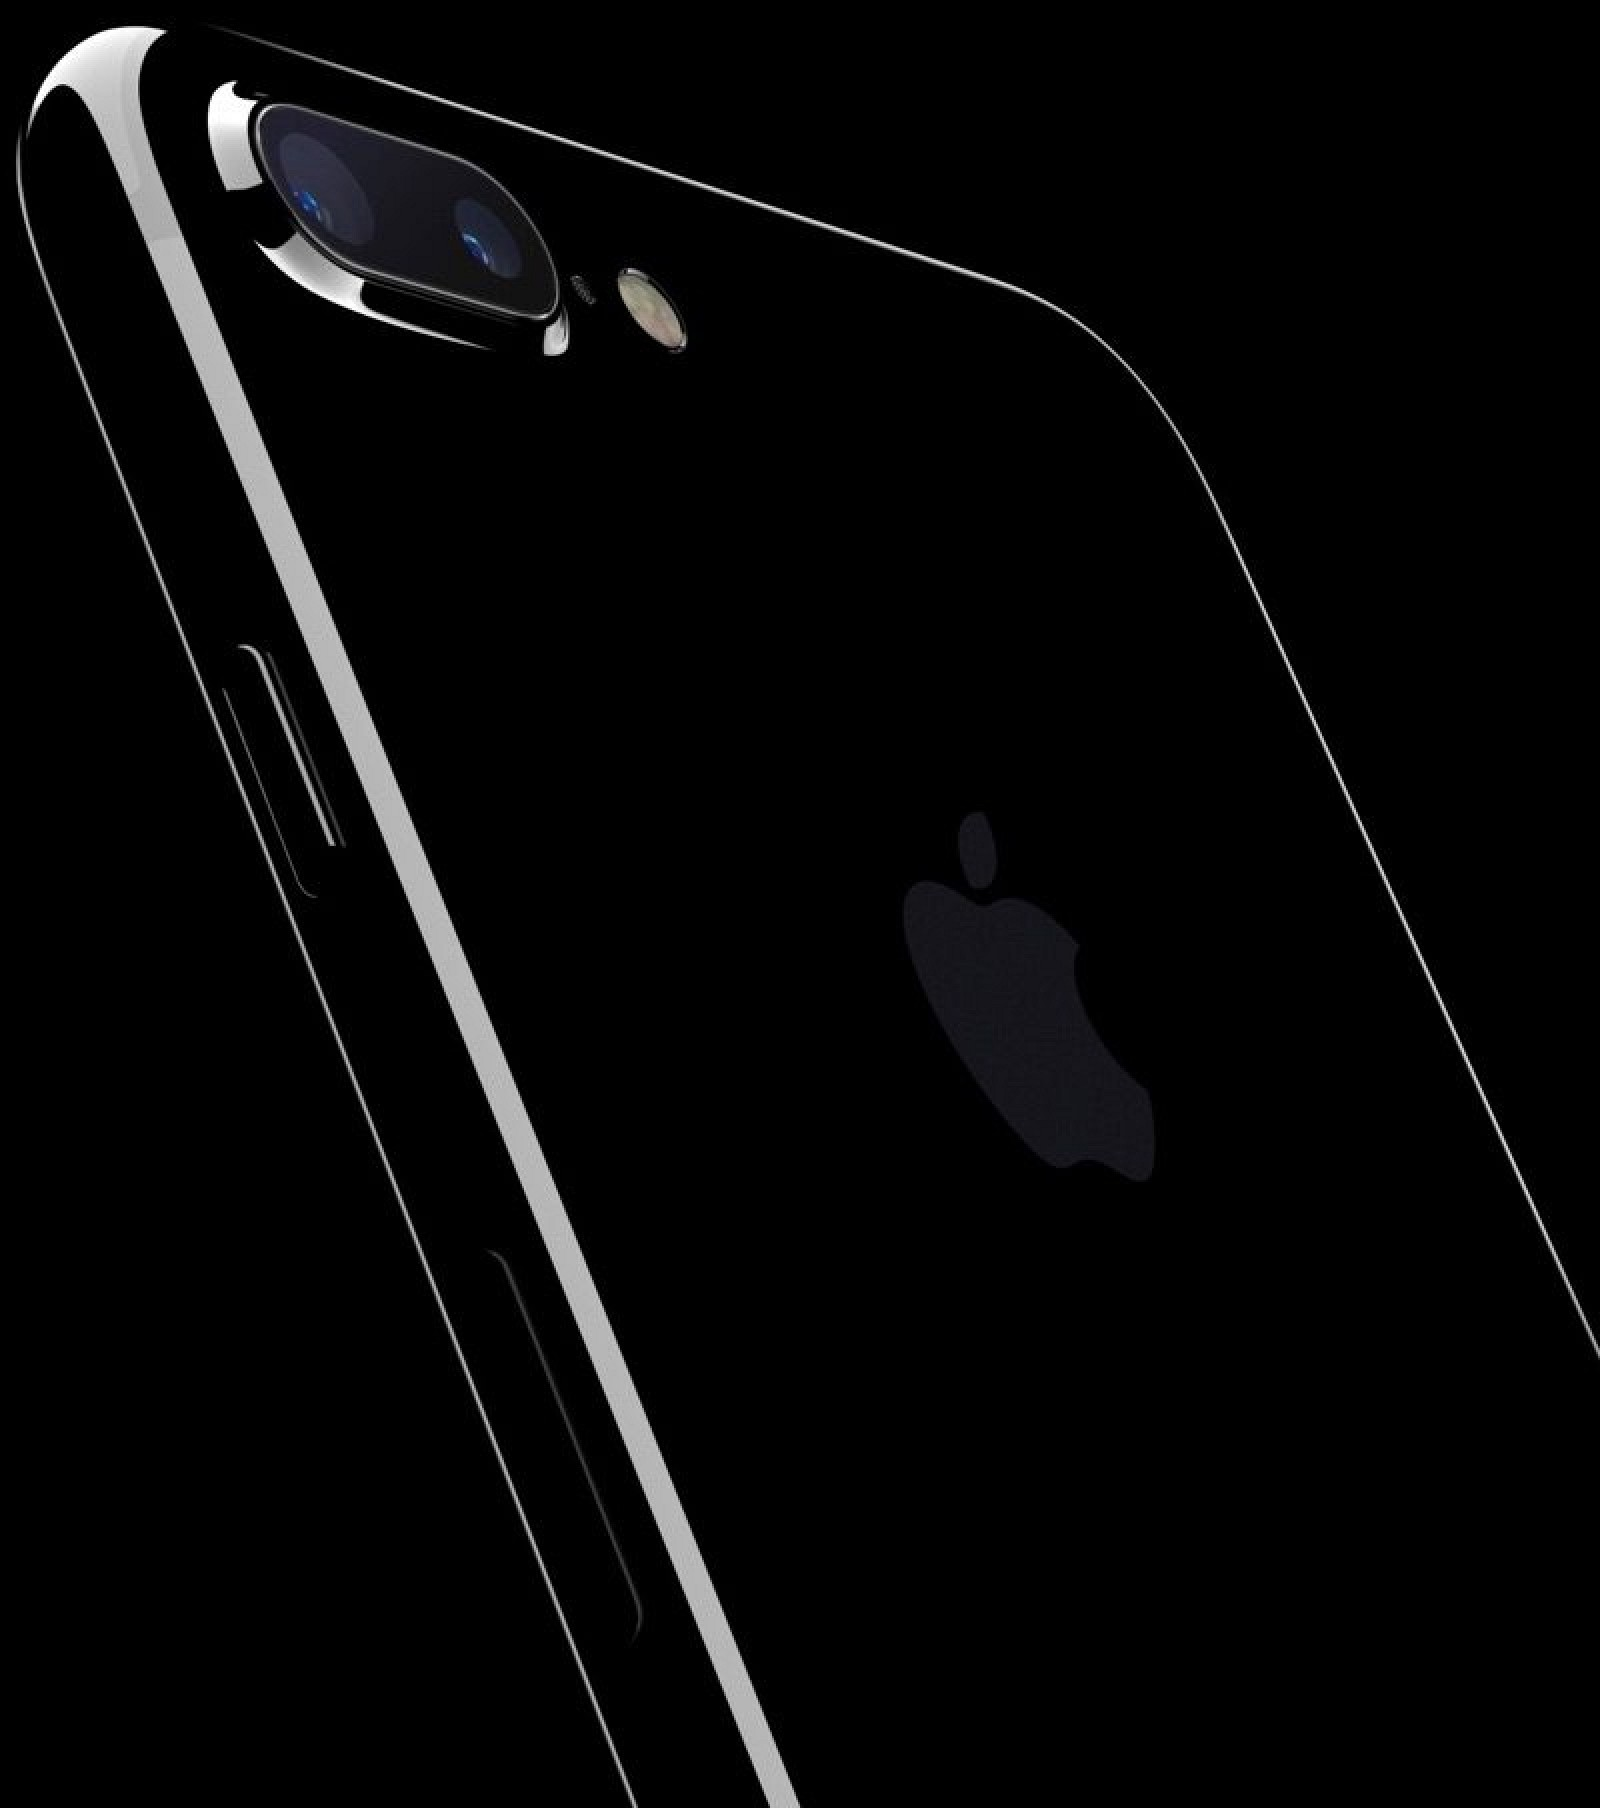 iphone7plusjetblack-800x904